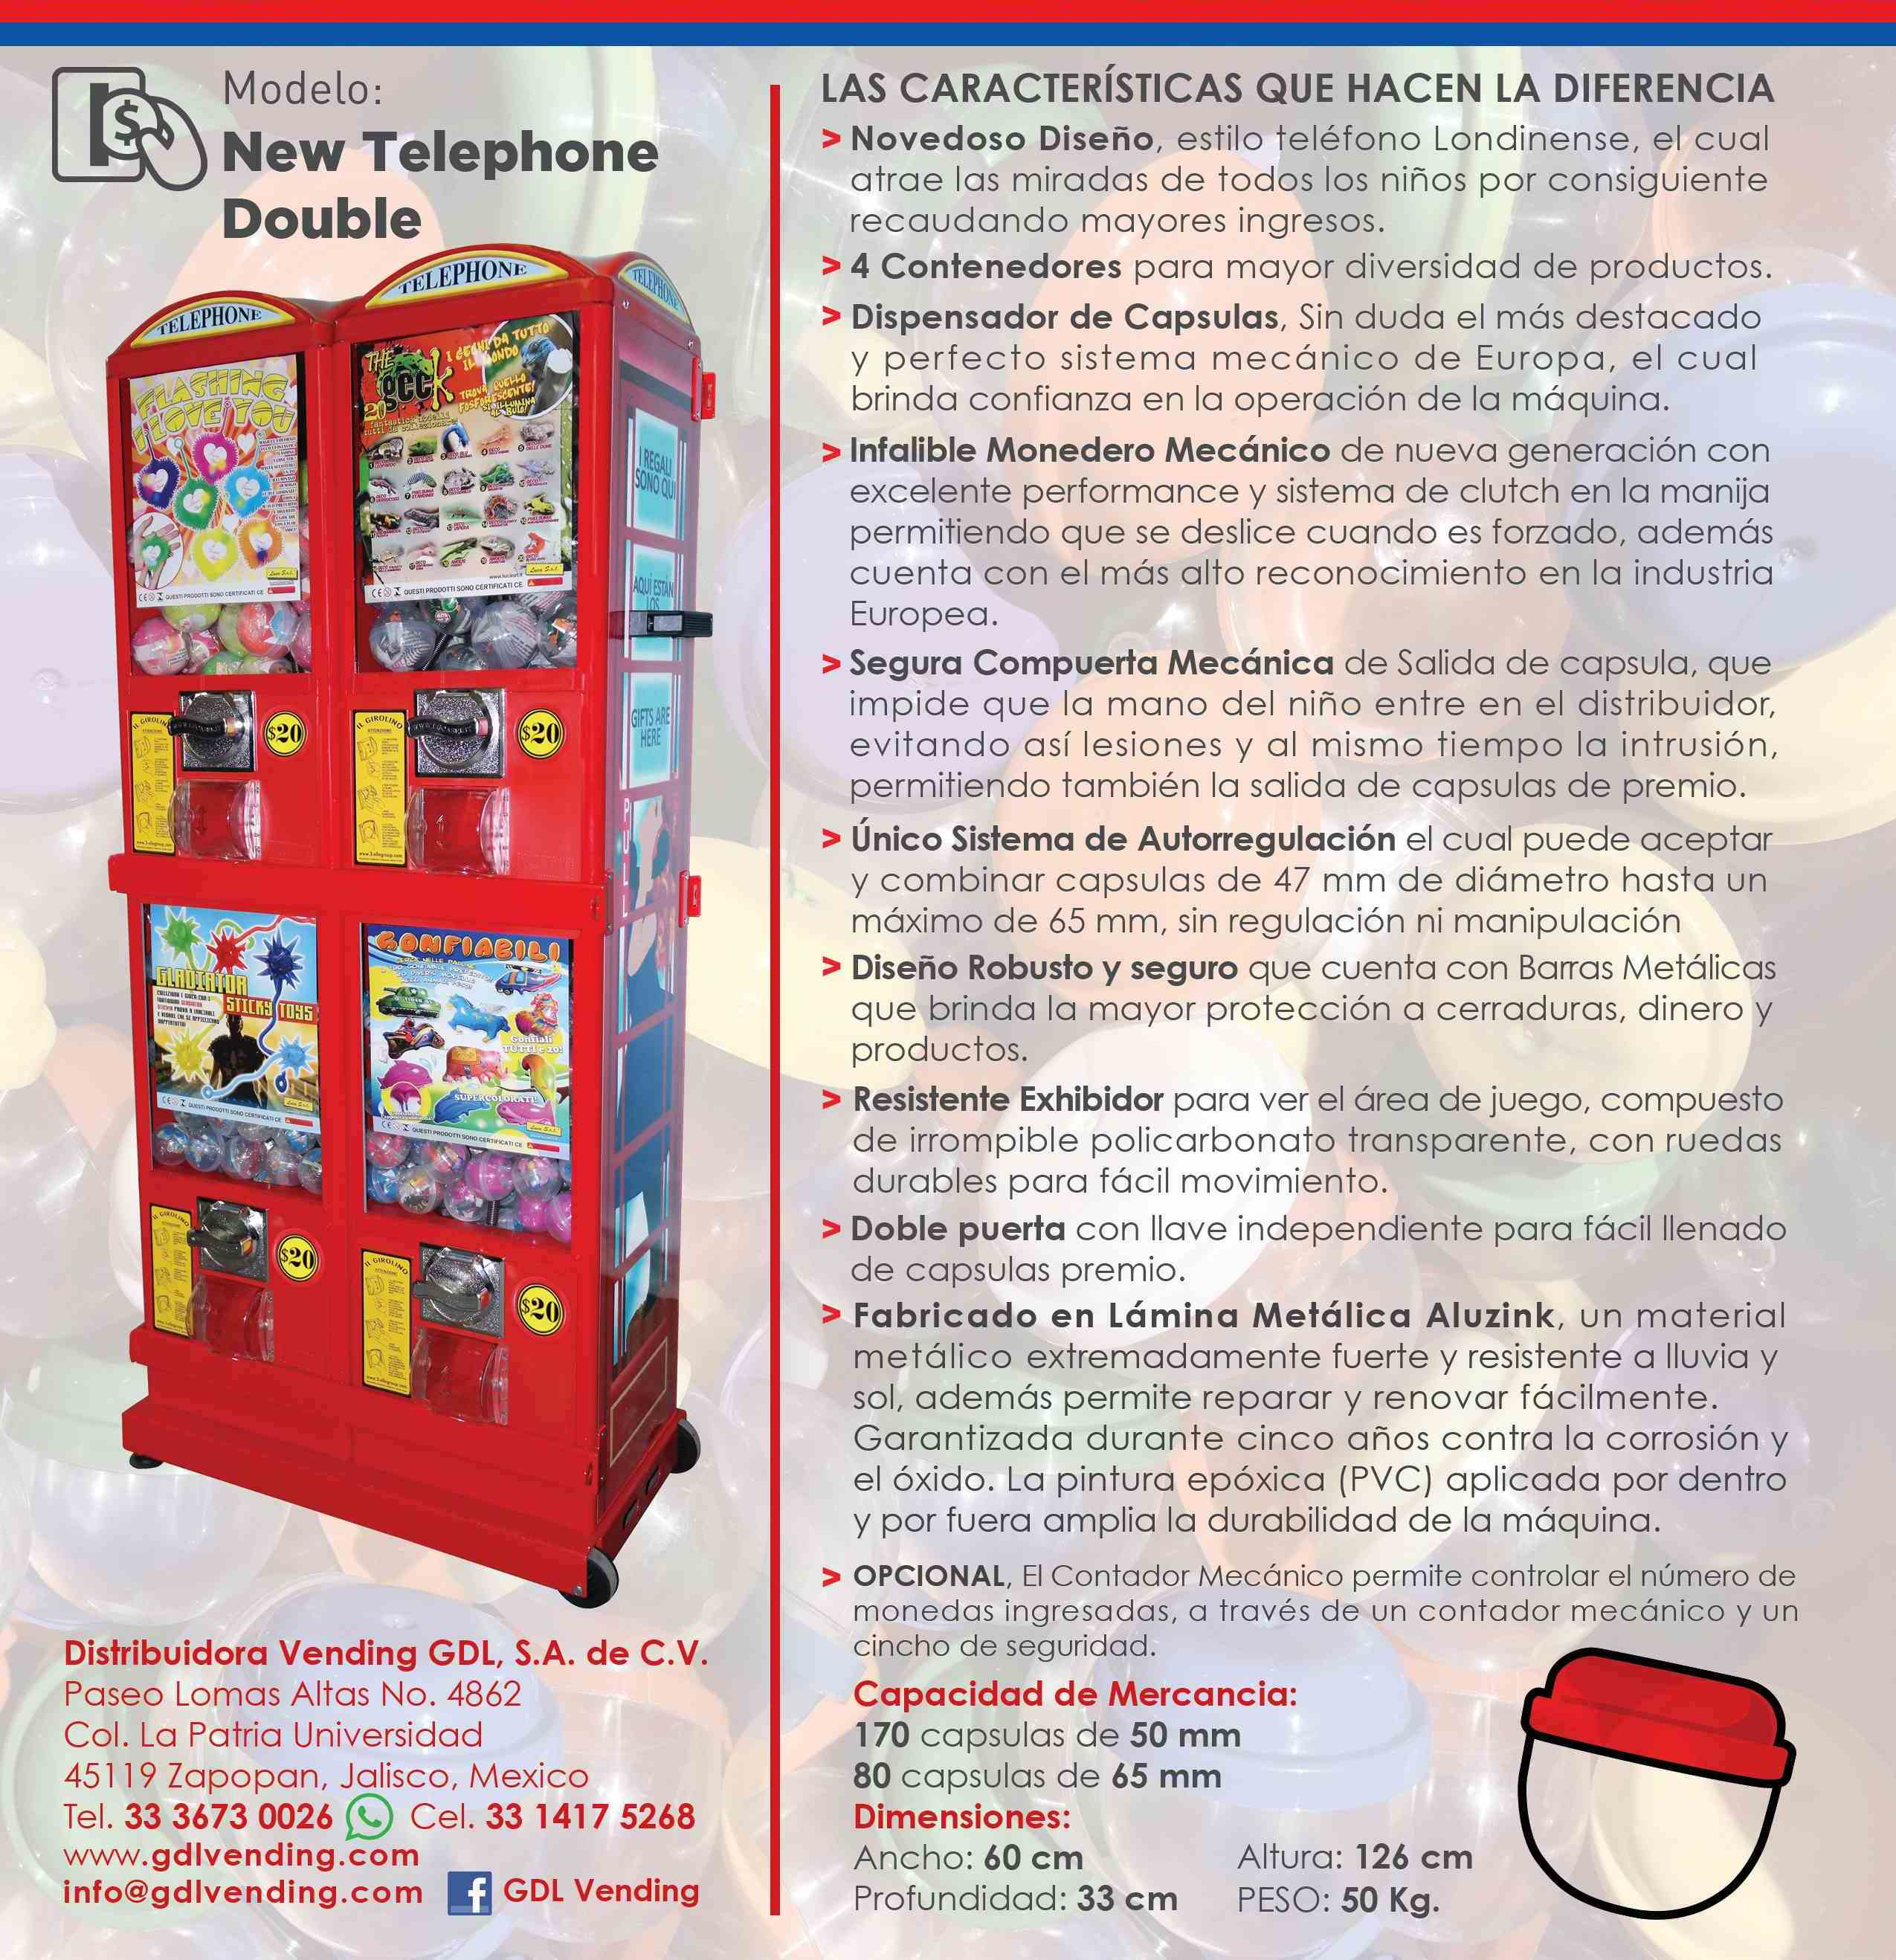 GDL_vending_NEW telephone double-Cropped